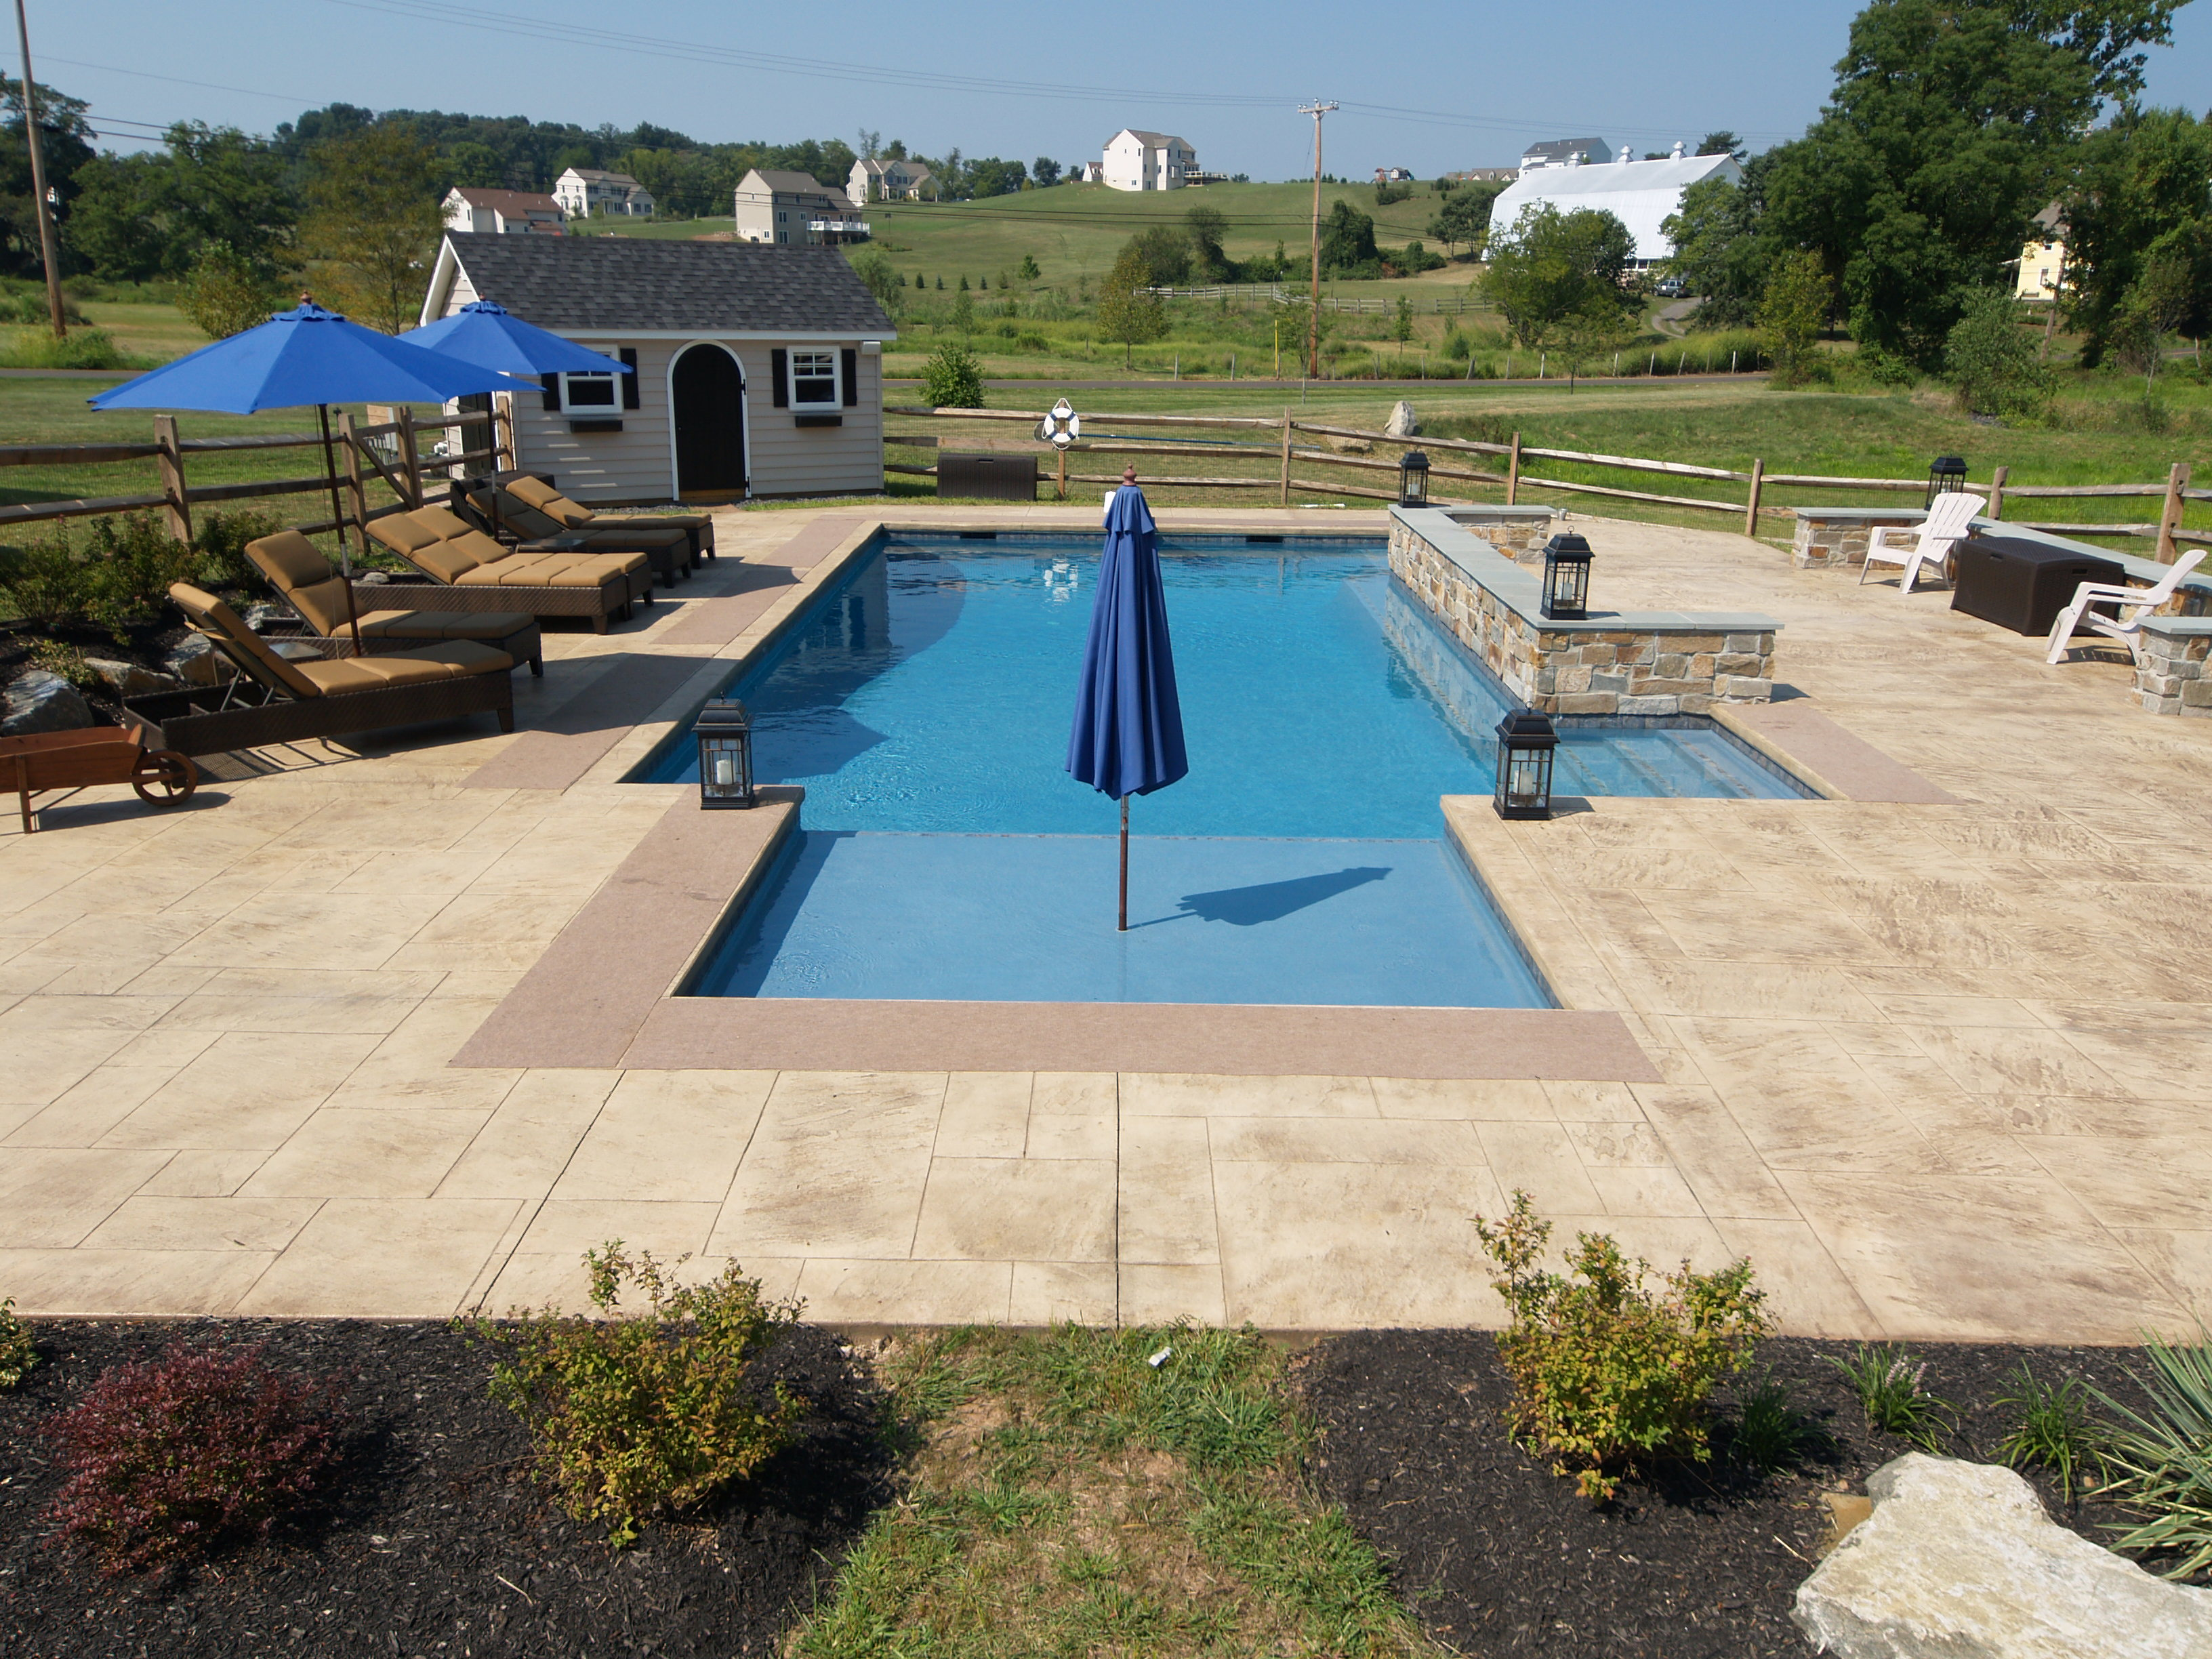 Gunite Swimming Pool Designs Cool Gunite Pools & Pool Builders  Swimming Pool Design  Fronheiser Pools Inspiration Design